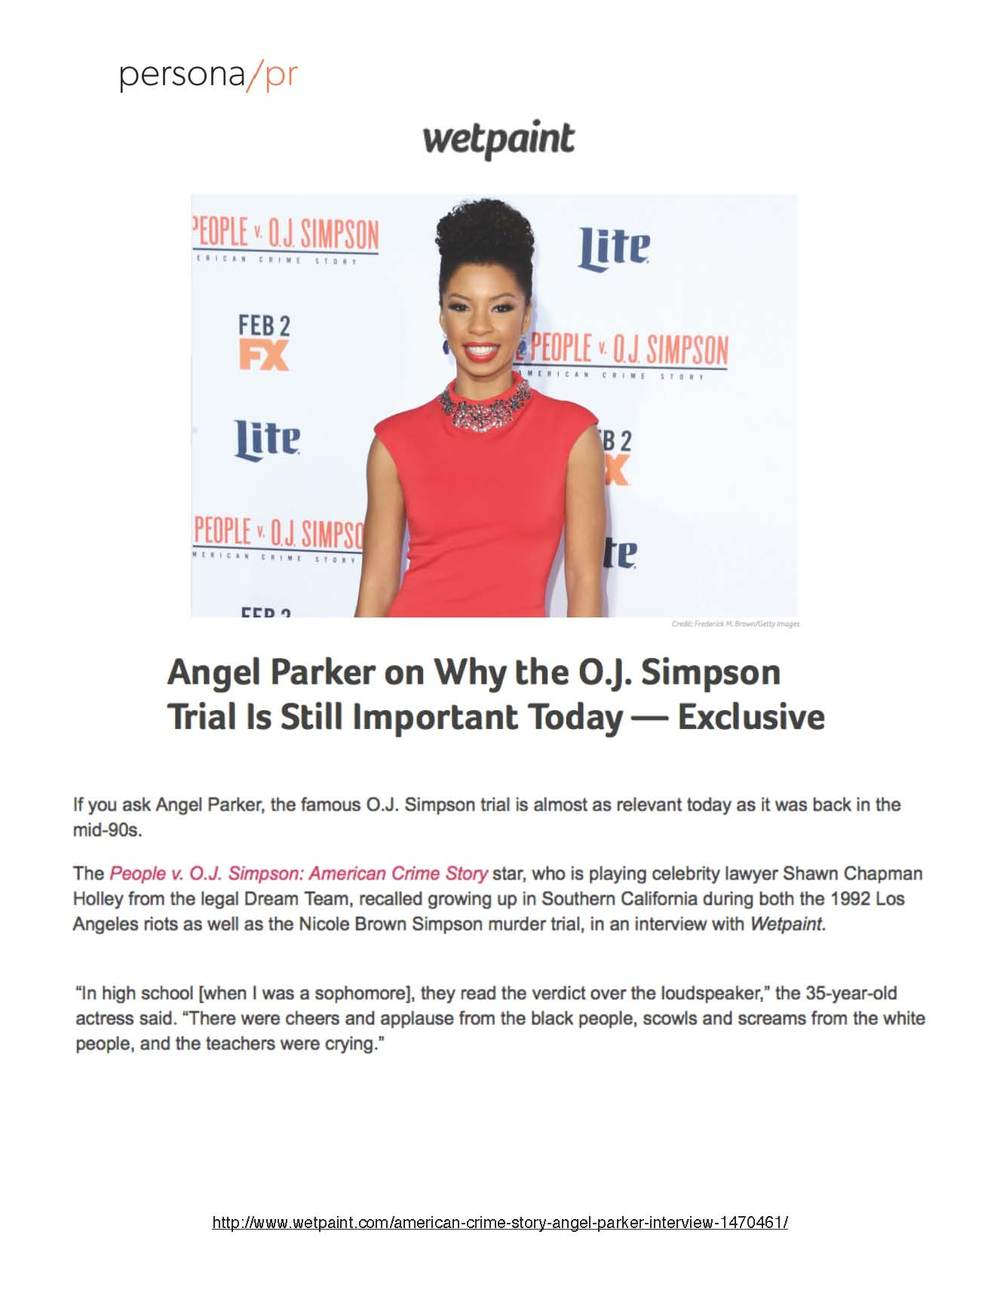 AngelParker-Wetpaint-02.02.16_Page_1.jpg